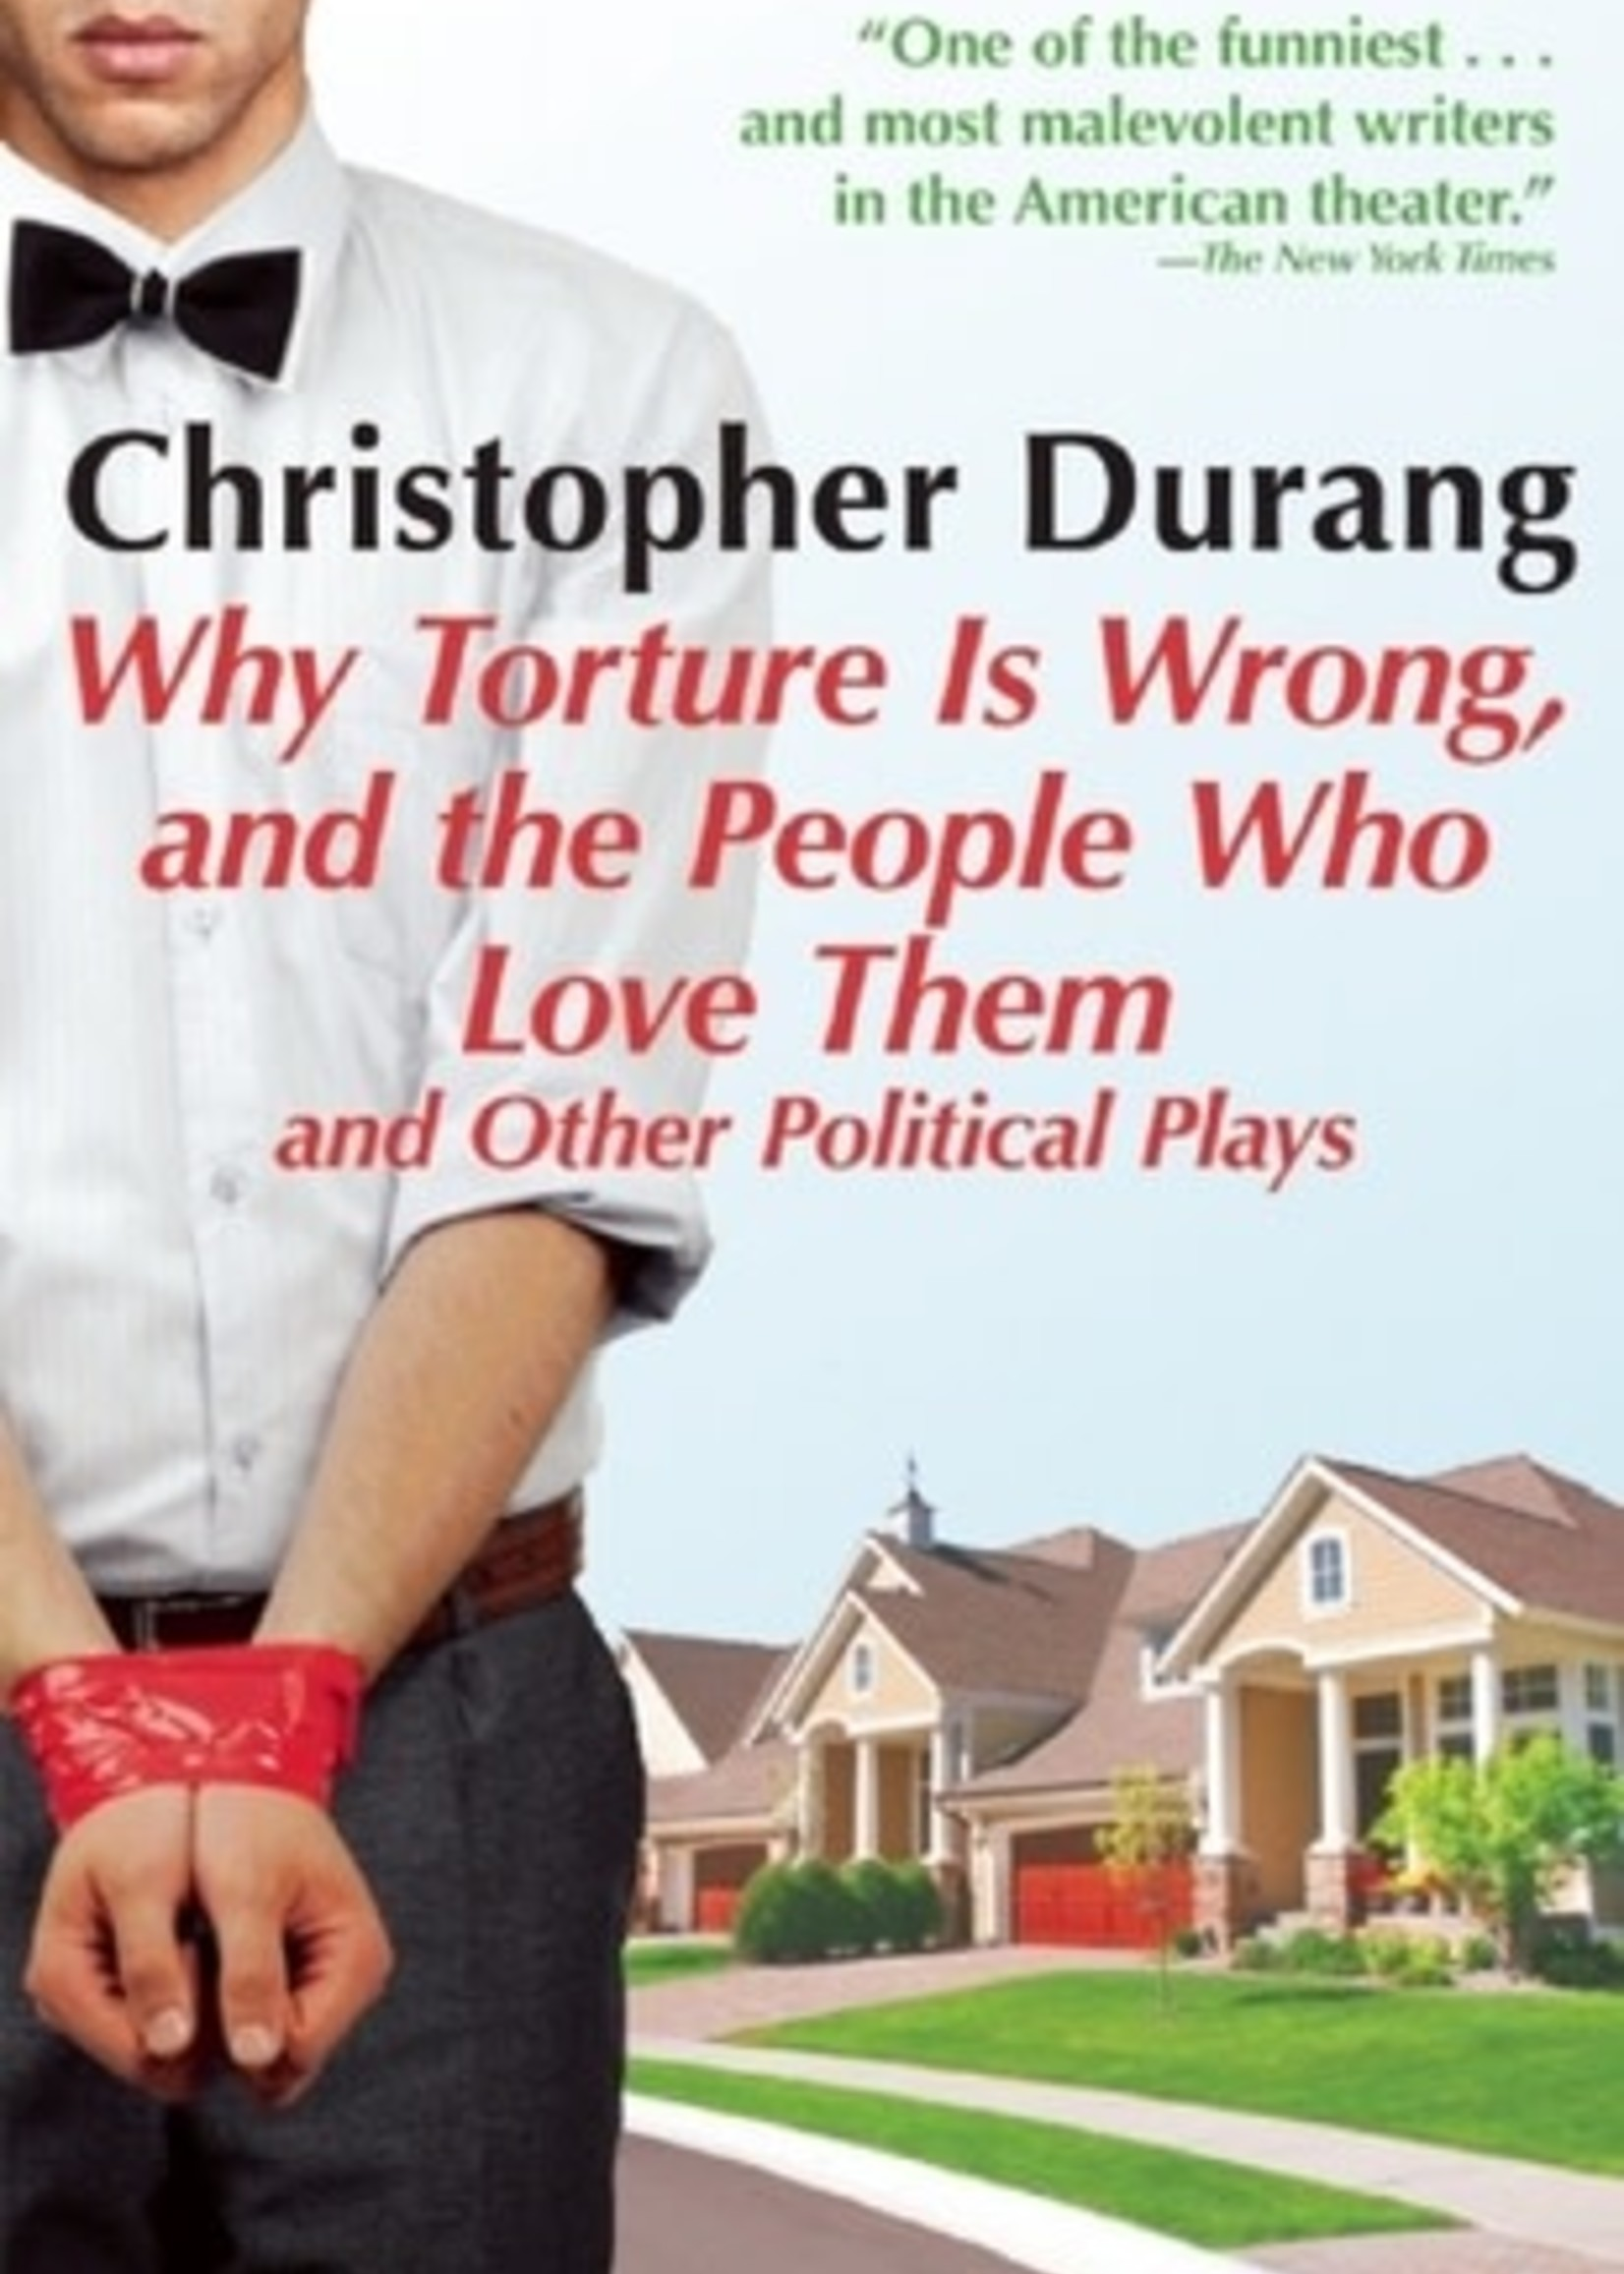 Why Torture is Wrong, and the People Who Love Them by Christopher Durang